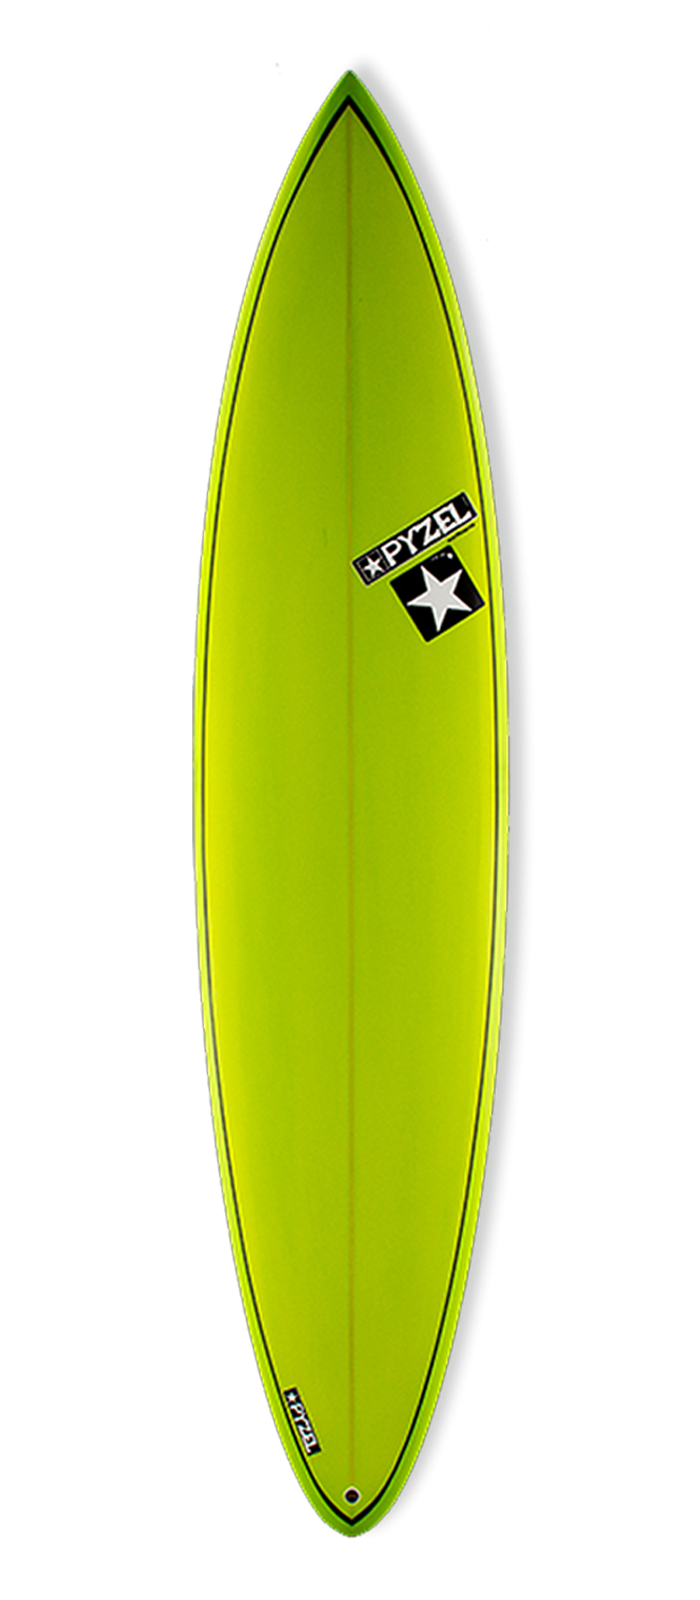 PADILLAC surfboard model